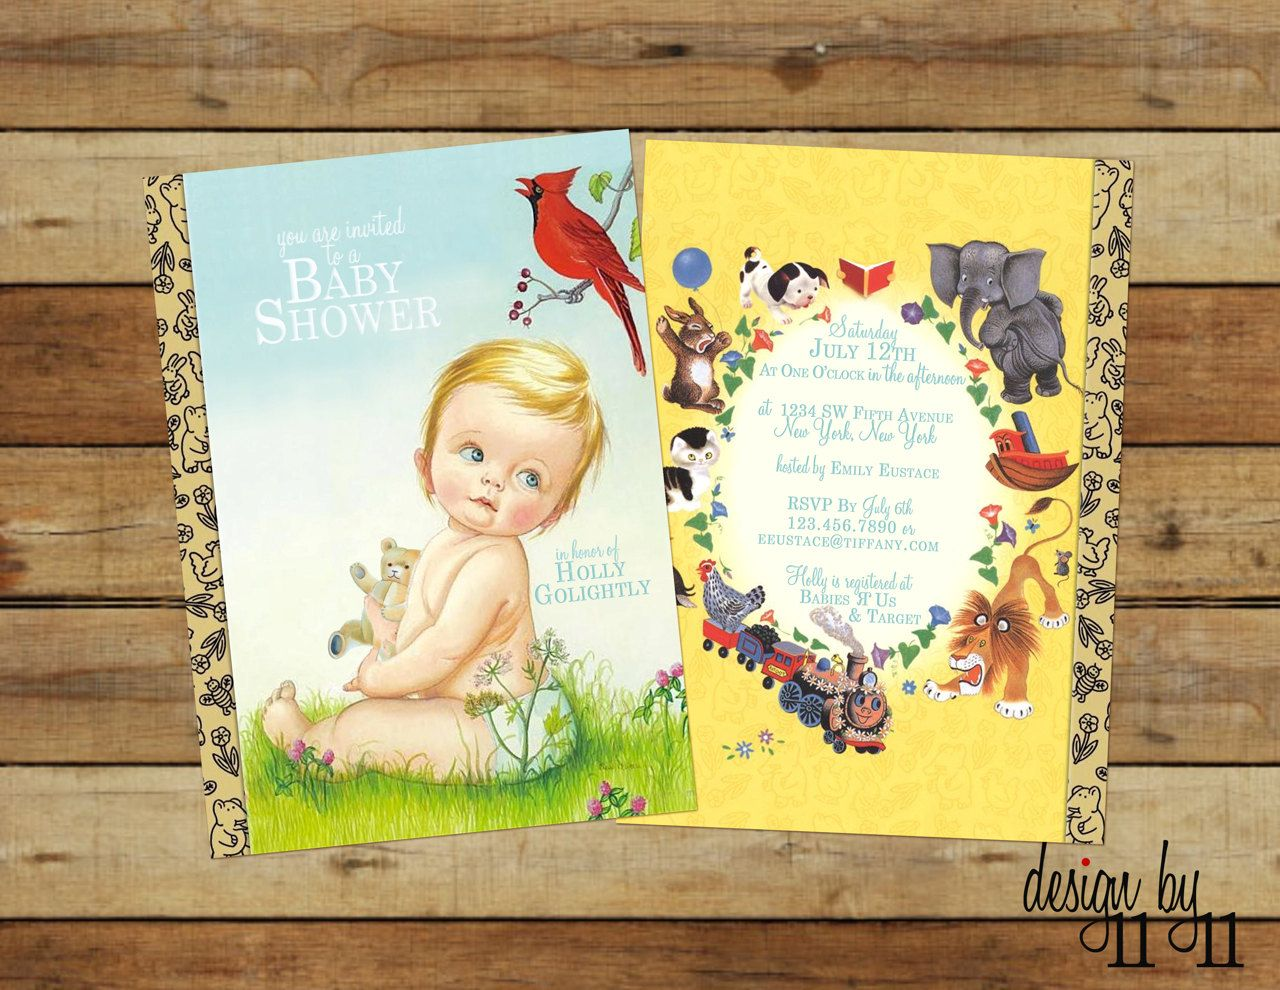 Vintage Little Golden Book Baby Shower Invitation by designby1111 ...